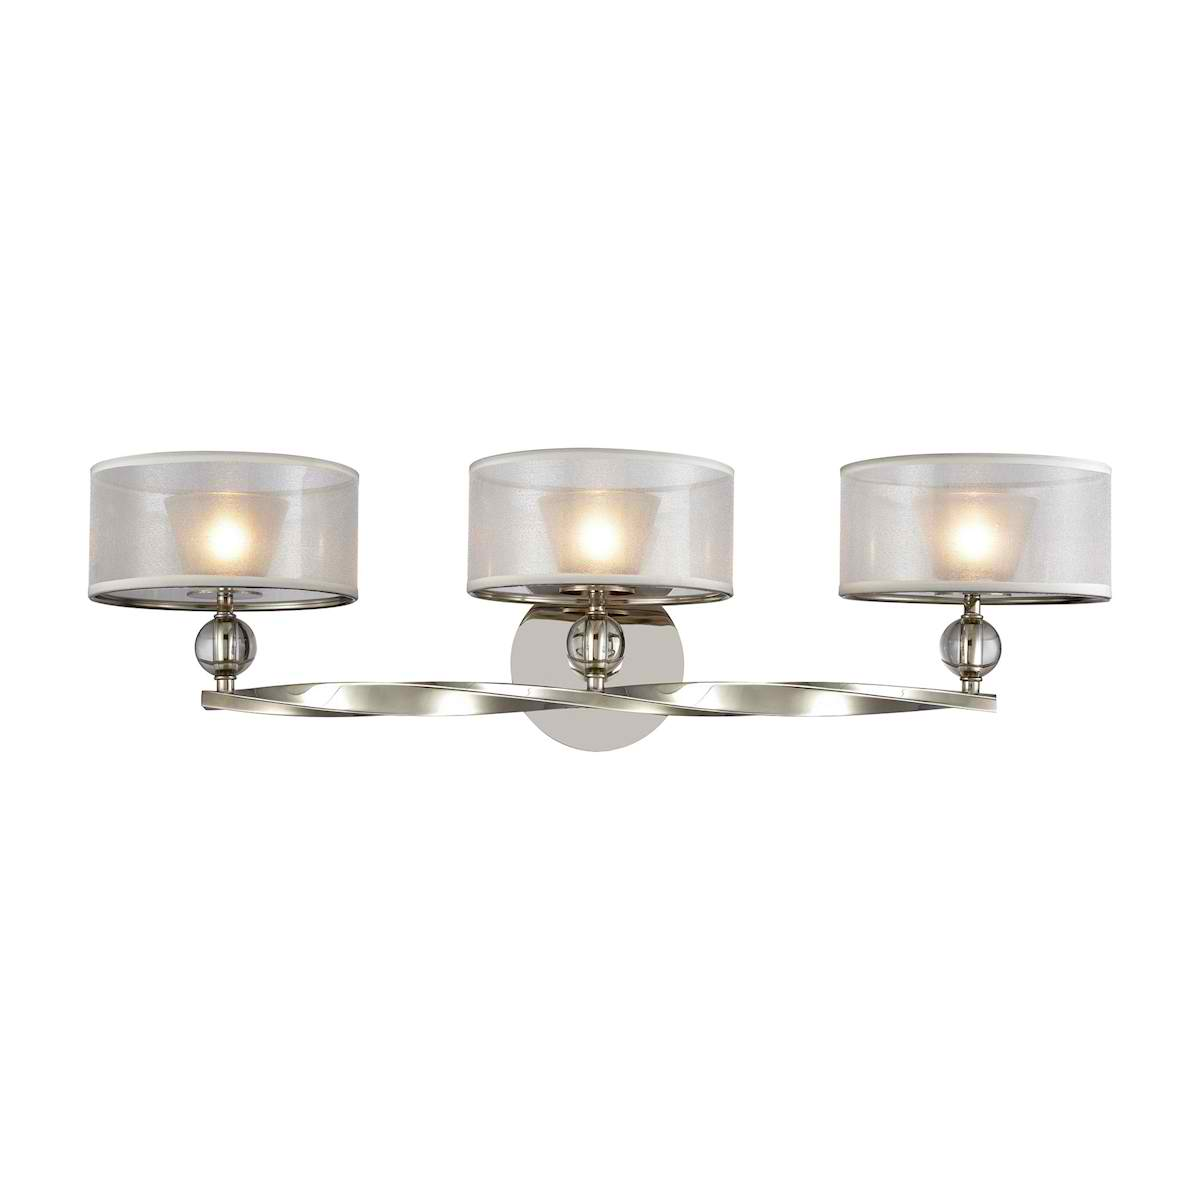 Corisande 3 Light Vanity in Polished Nickel with Silver Organza Shades